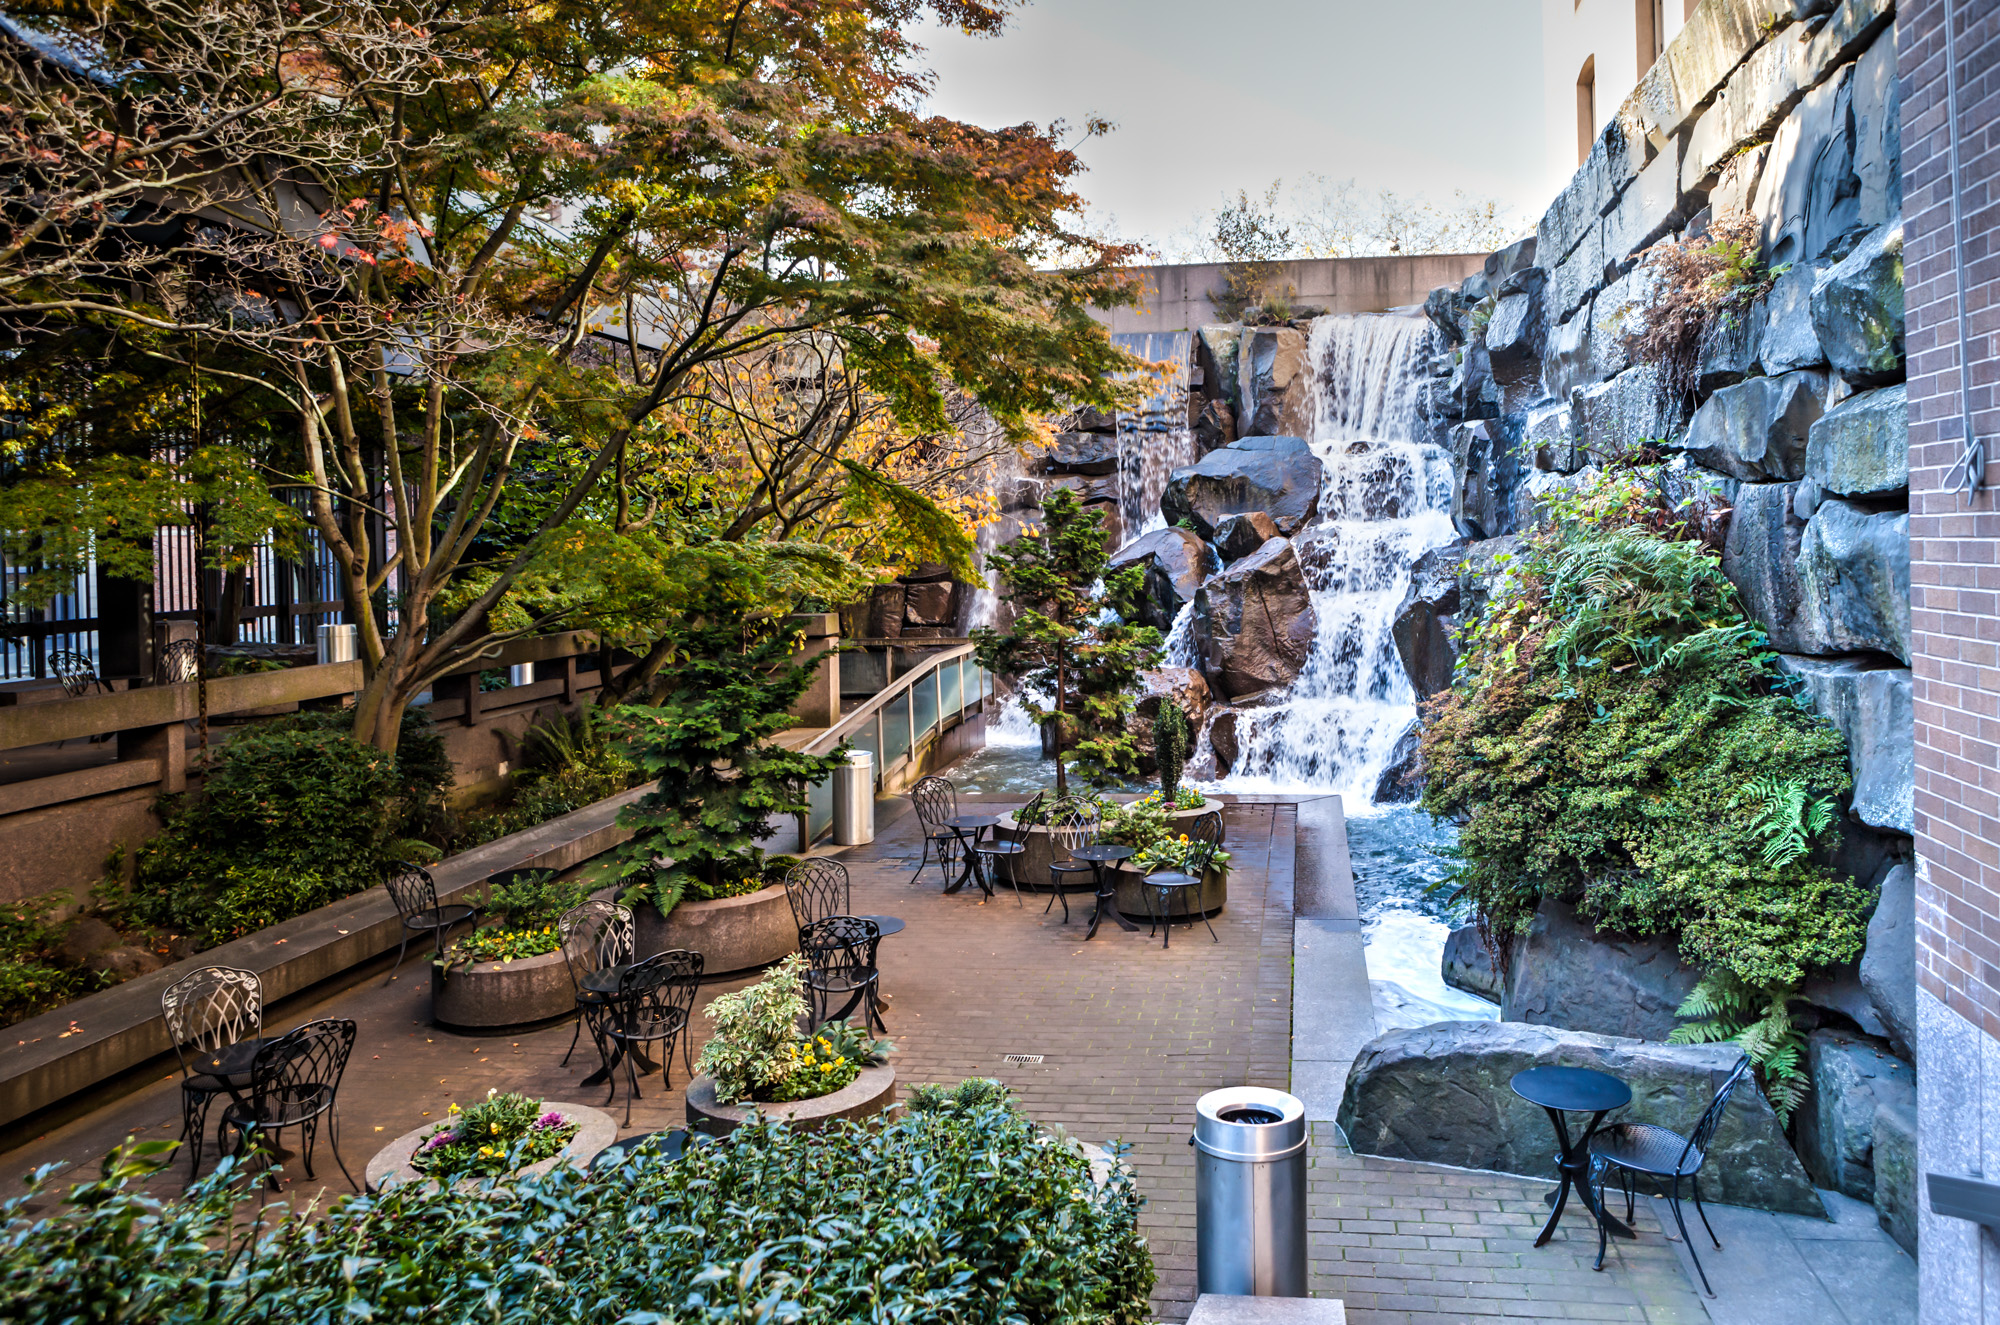 Waterfall garden a hidden gem in seattle gate to for Garden waterfall